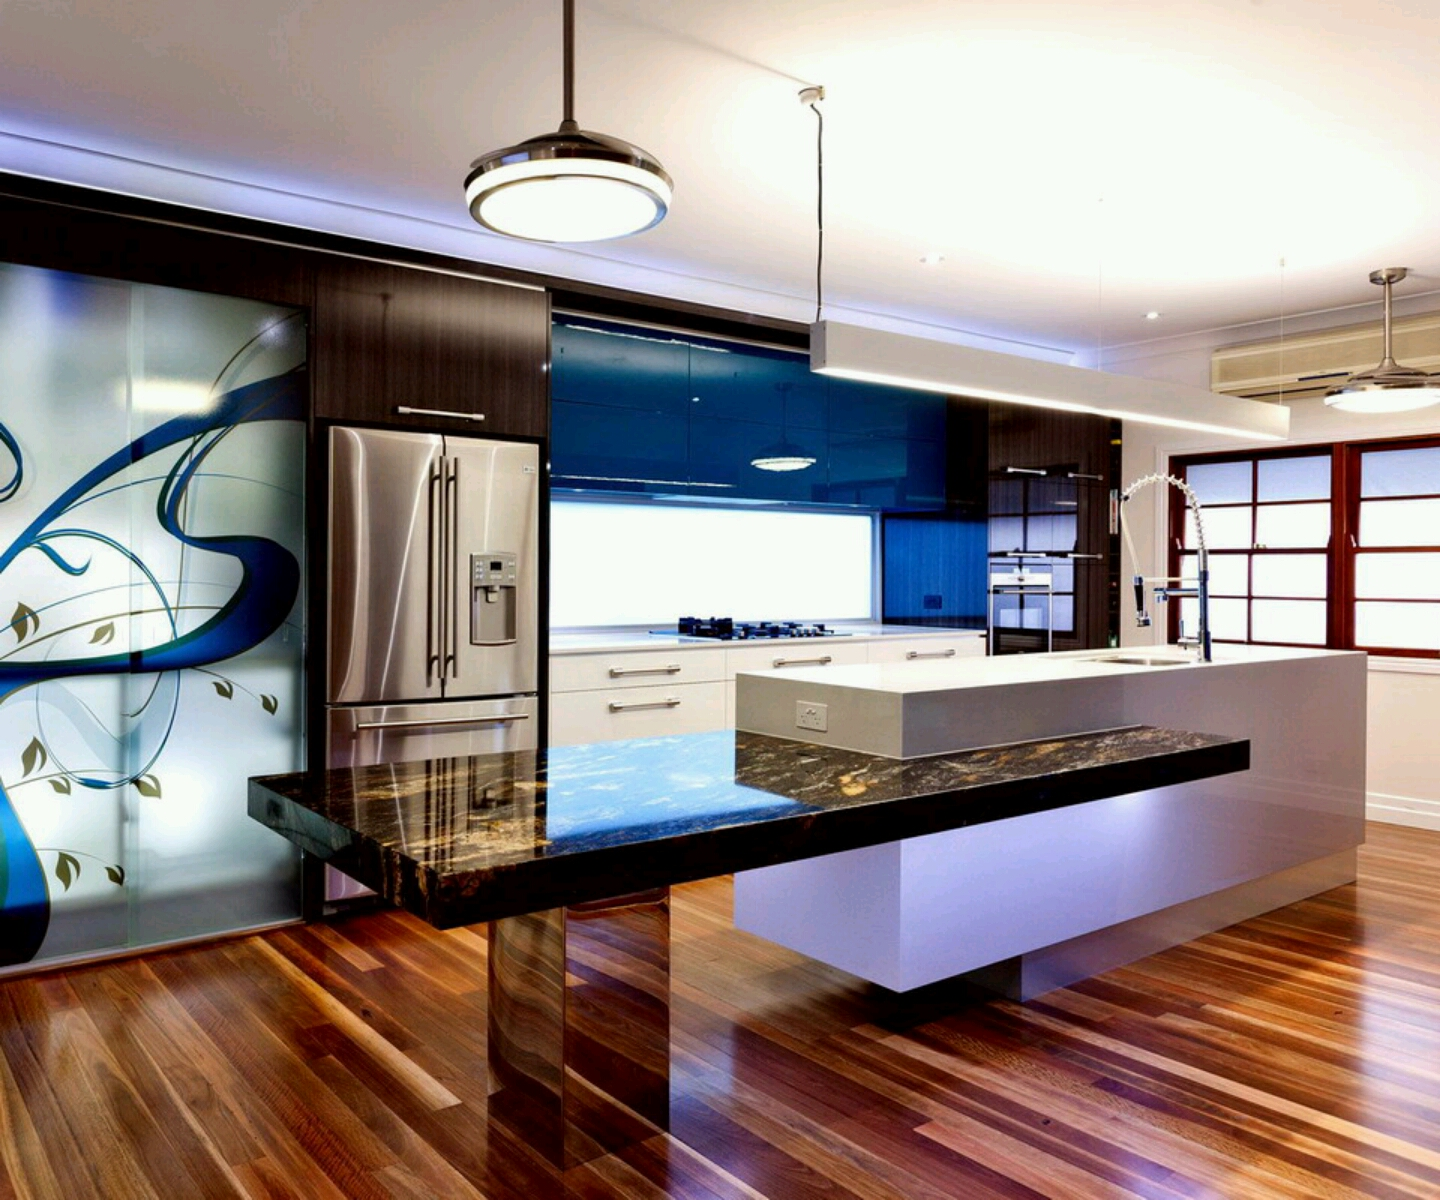 New home designs latest ultra modern kitchen designs ideas for Kitchen interior ideas